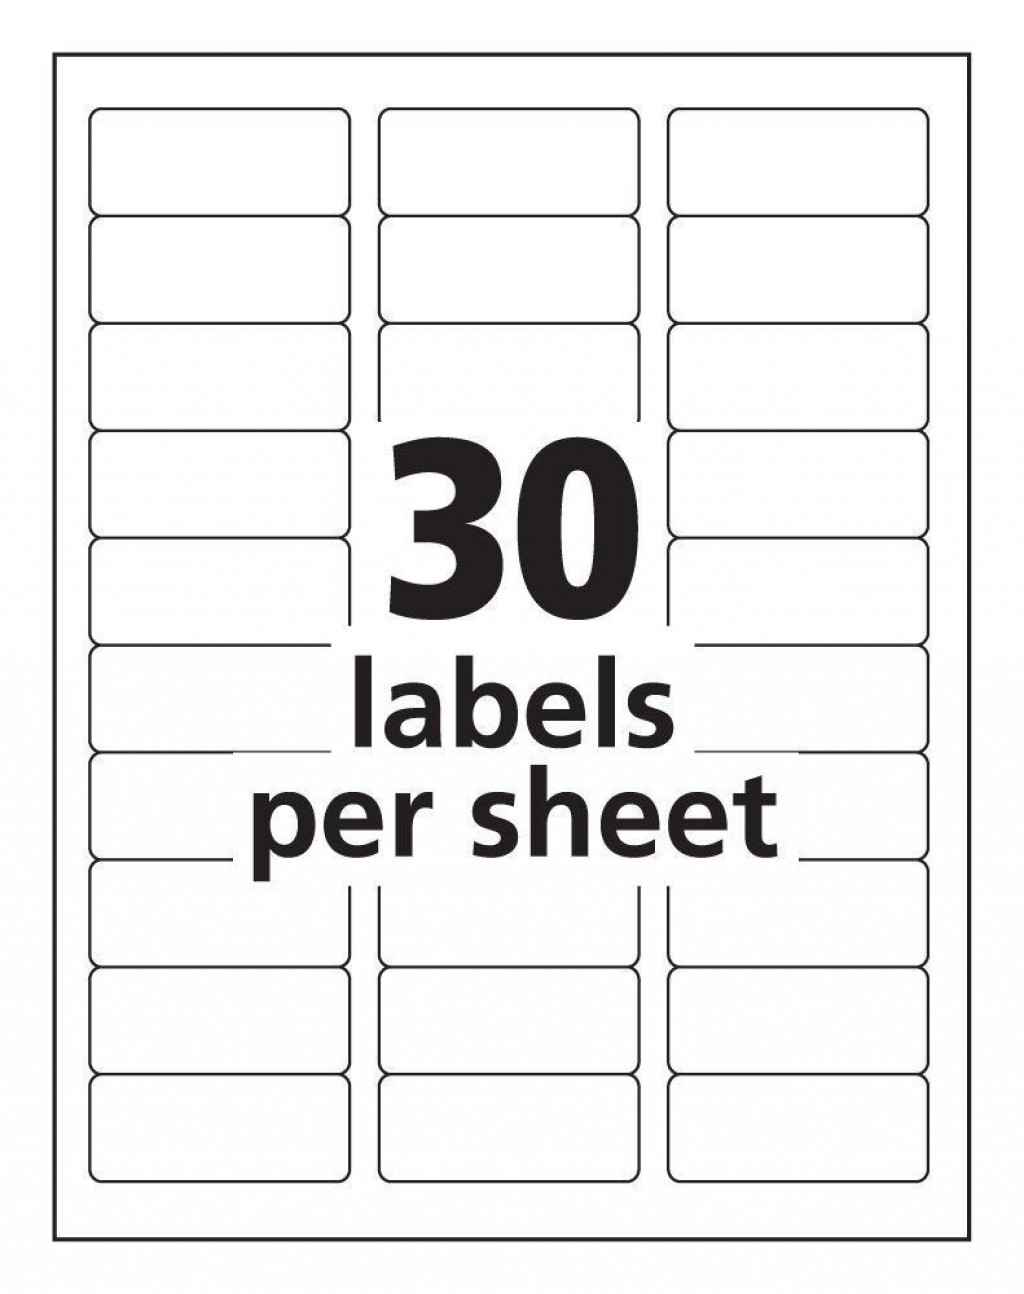 000 Impressive Microsoft Word Addres Label Template 30 Per Sheet Picture Large